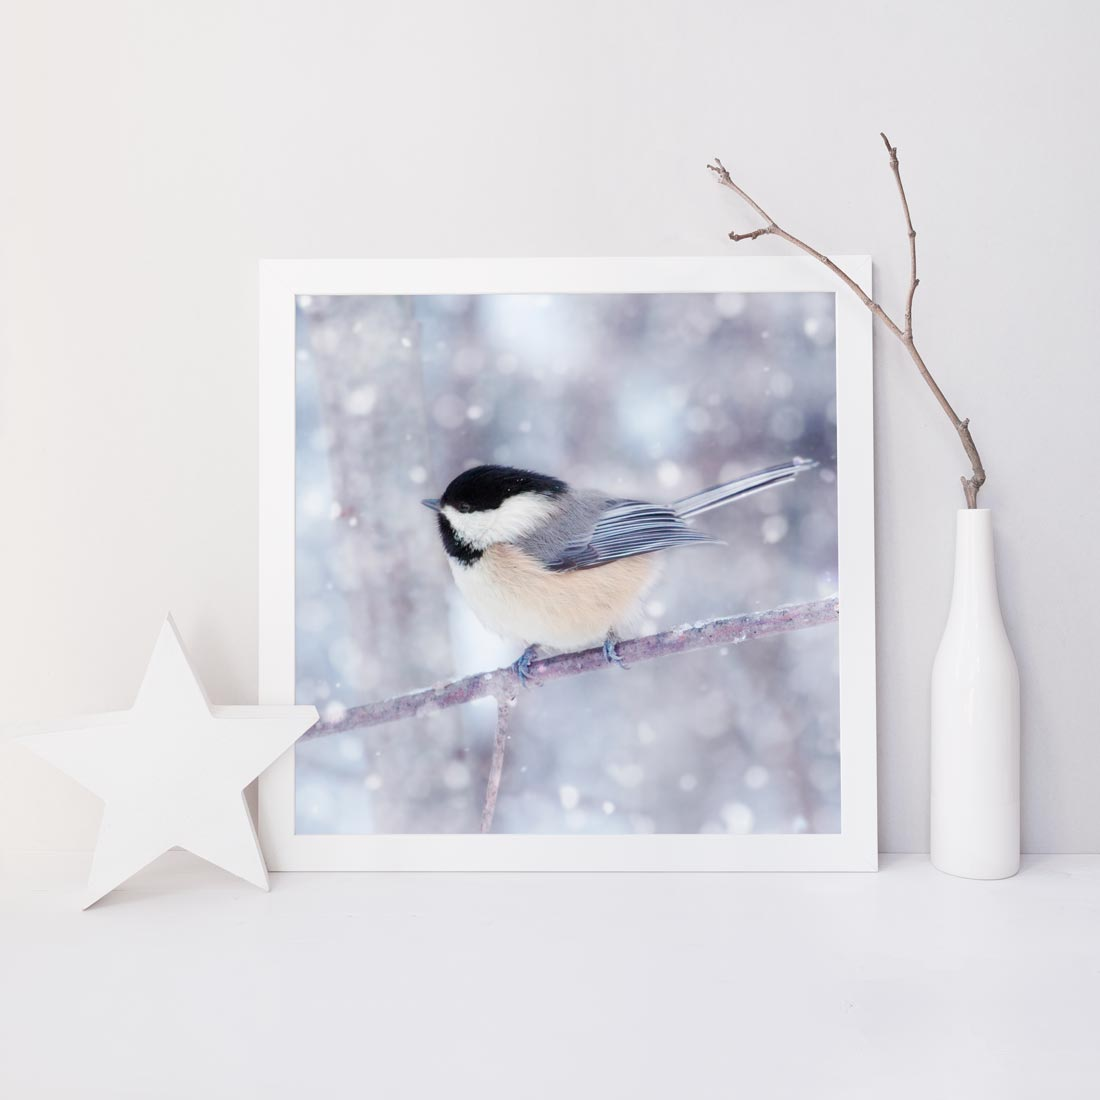 Chickadee in Snow No. 12